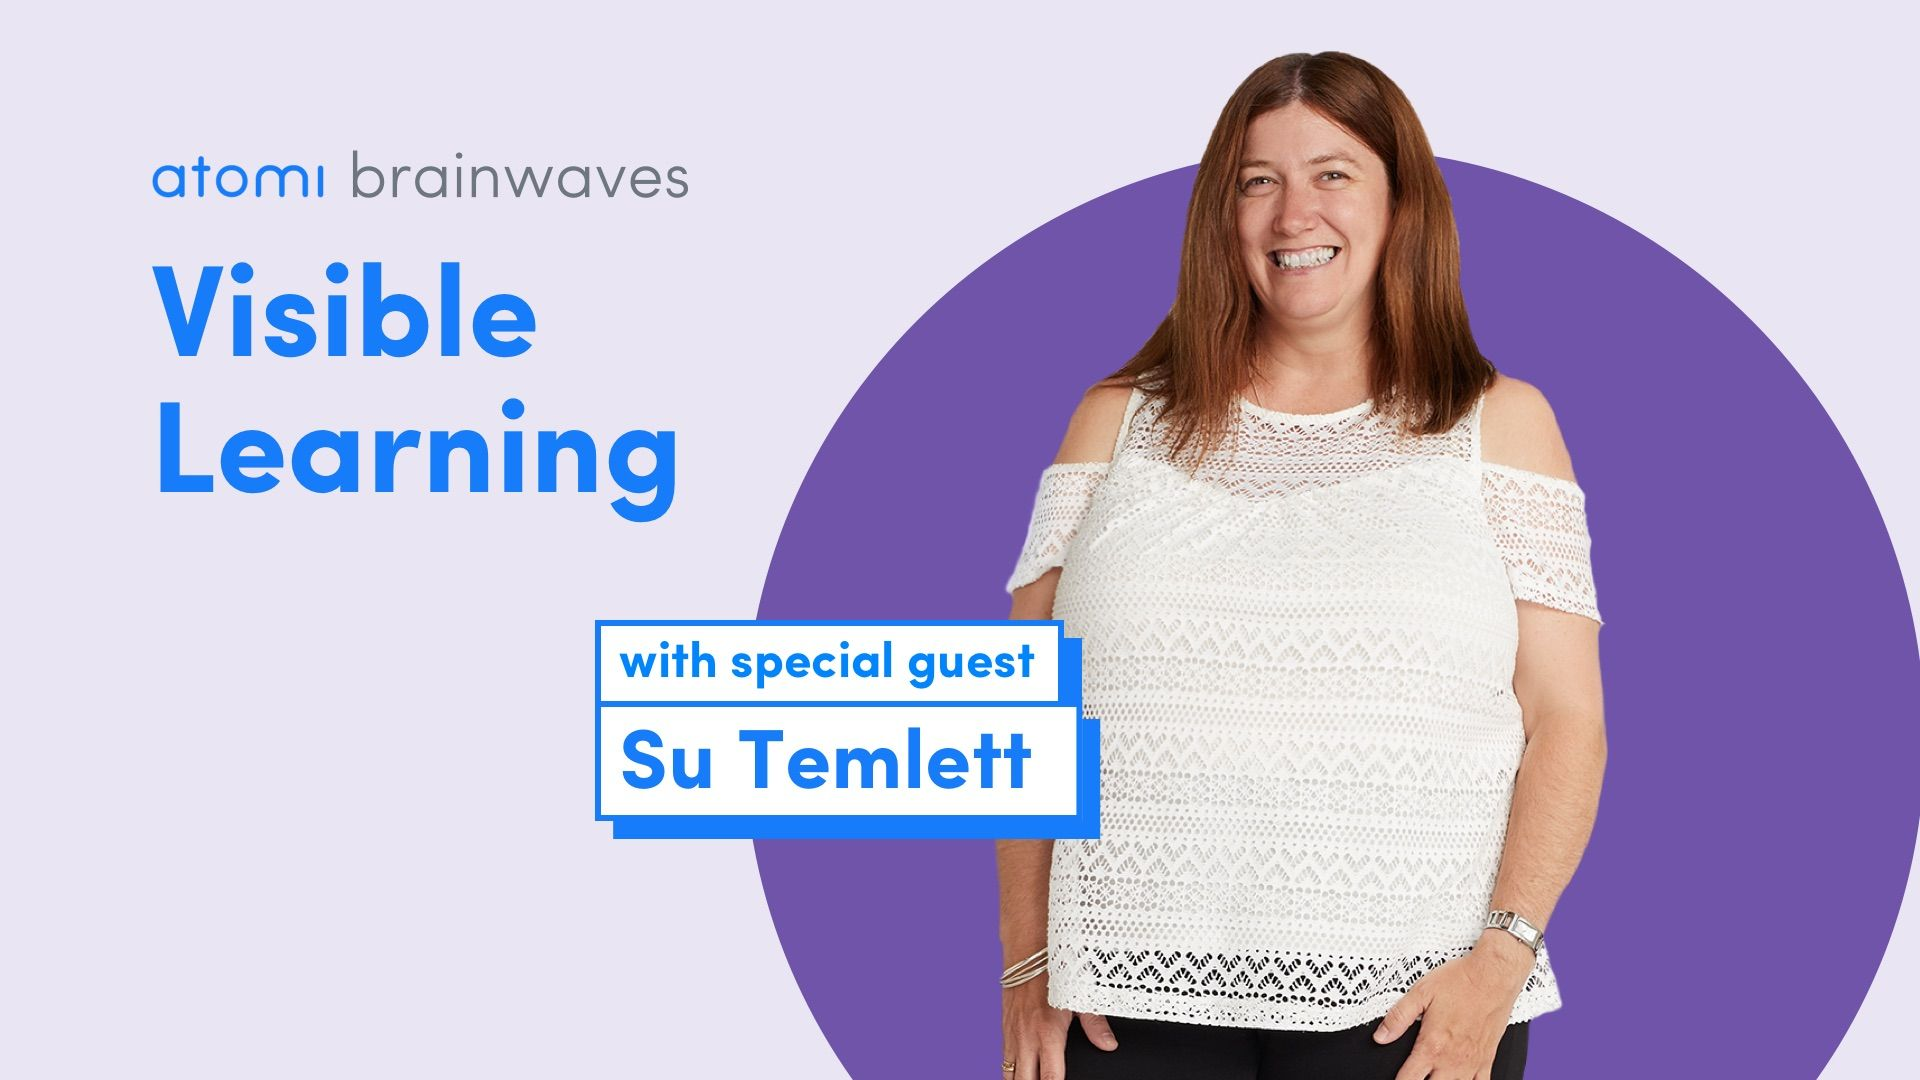 Atomi Brainwaves Podcast Visible Learning with special guest Su Temlett